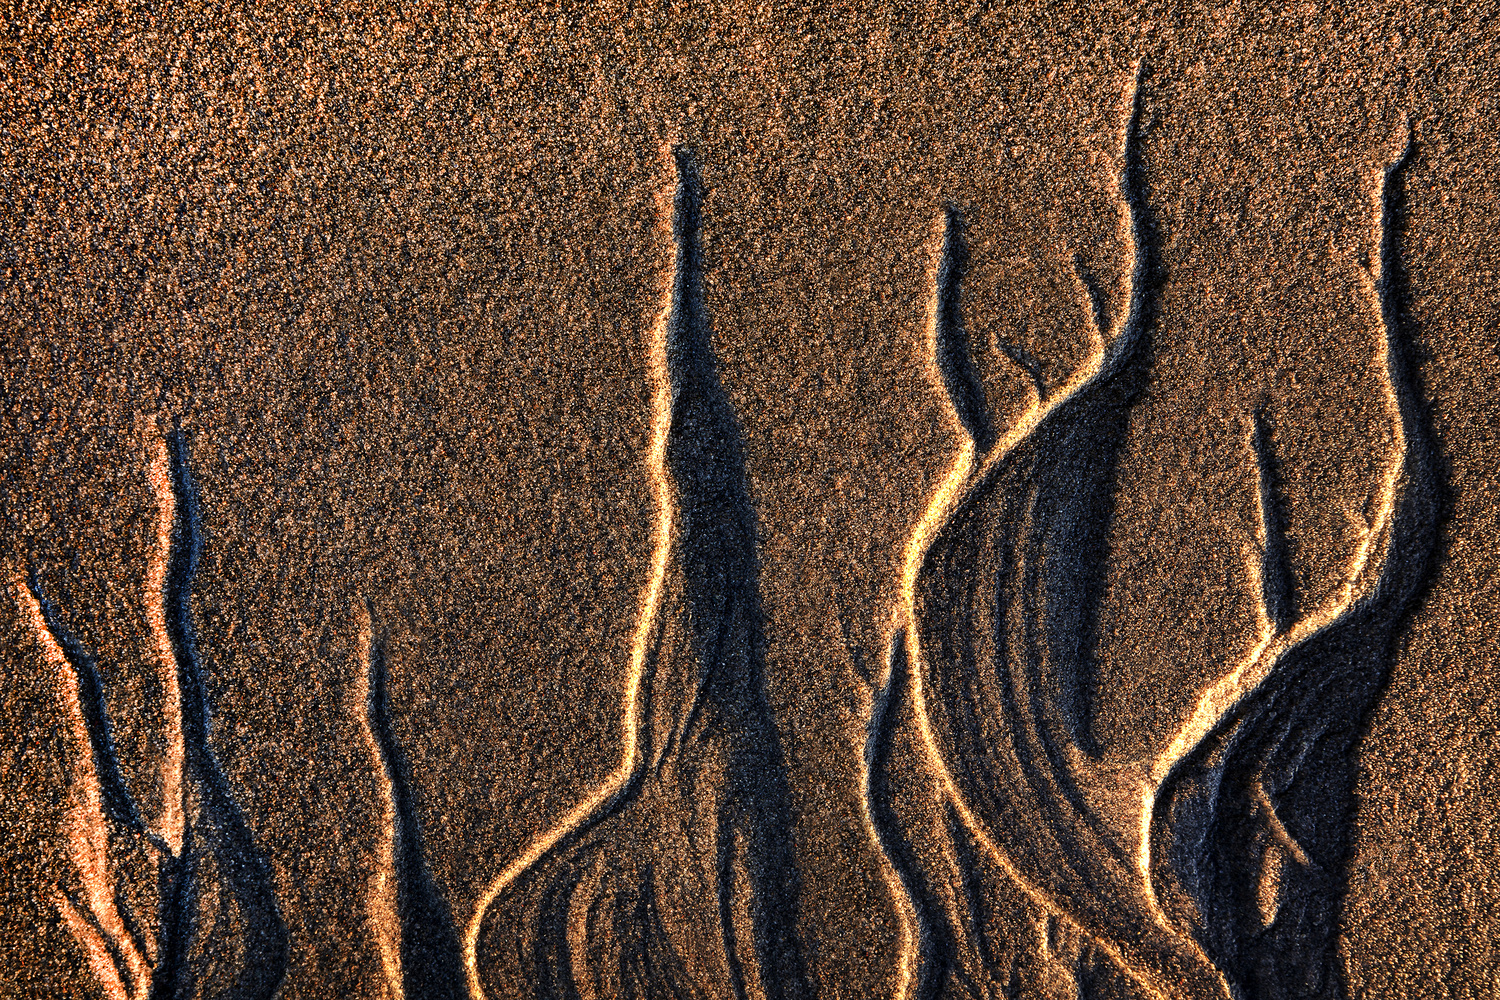 Sand shapes by Stephen Clough